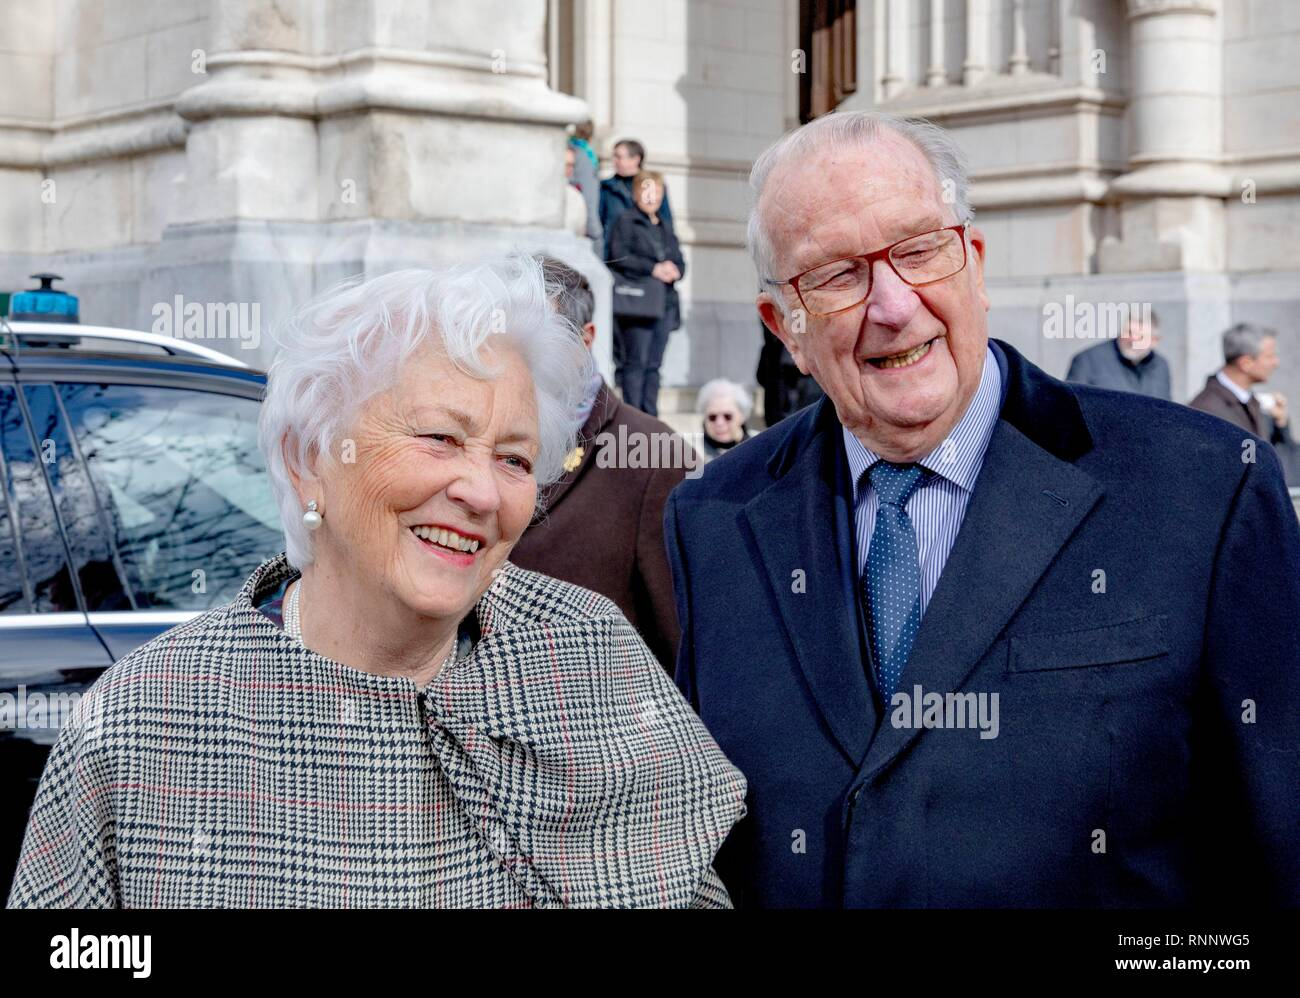 Brussels, Belgium  19th Feb, 2019  King Albert II and Queen